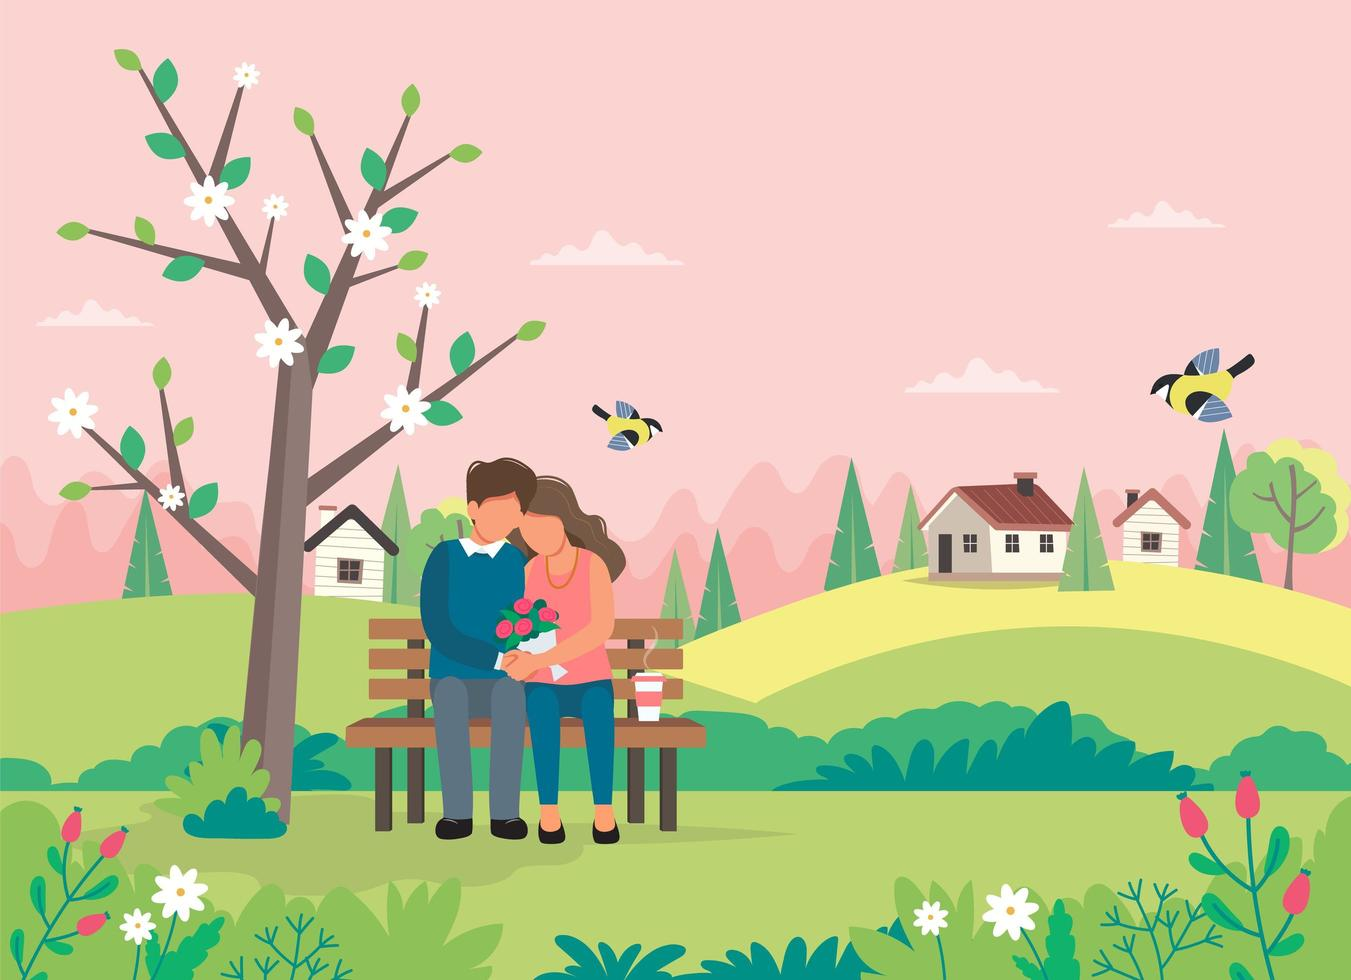 Couple in love clipart. Free download transparent .PNG   Creazilla